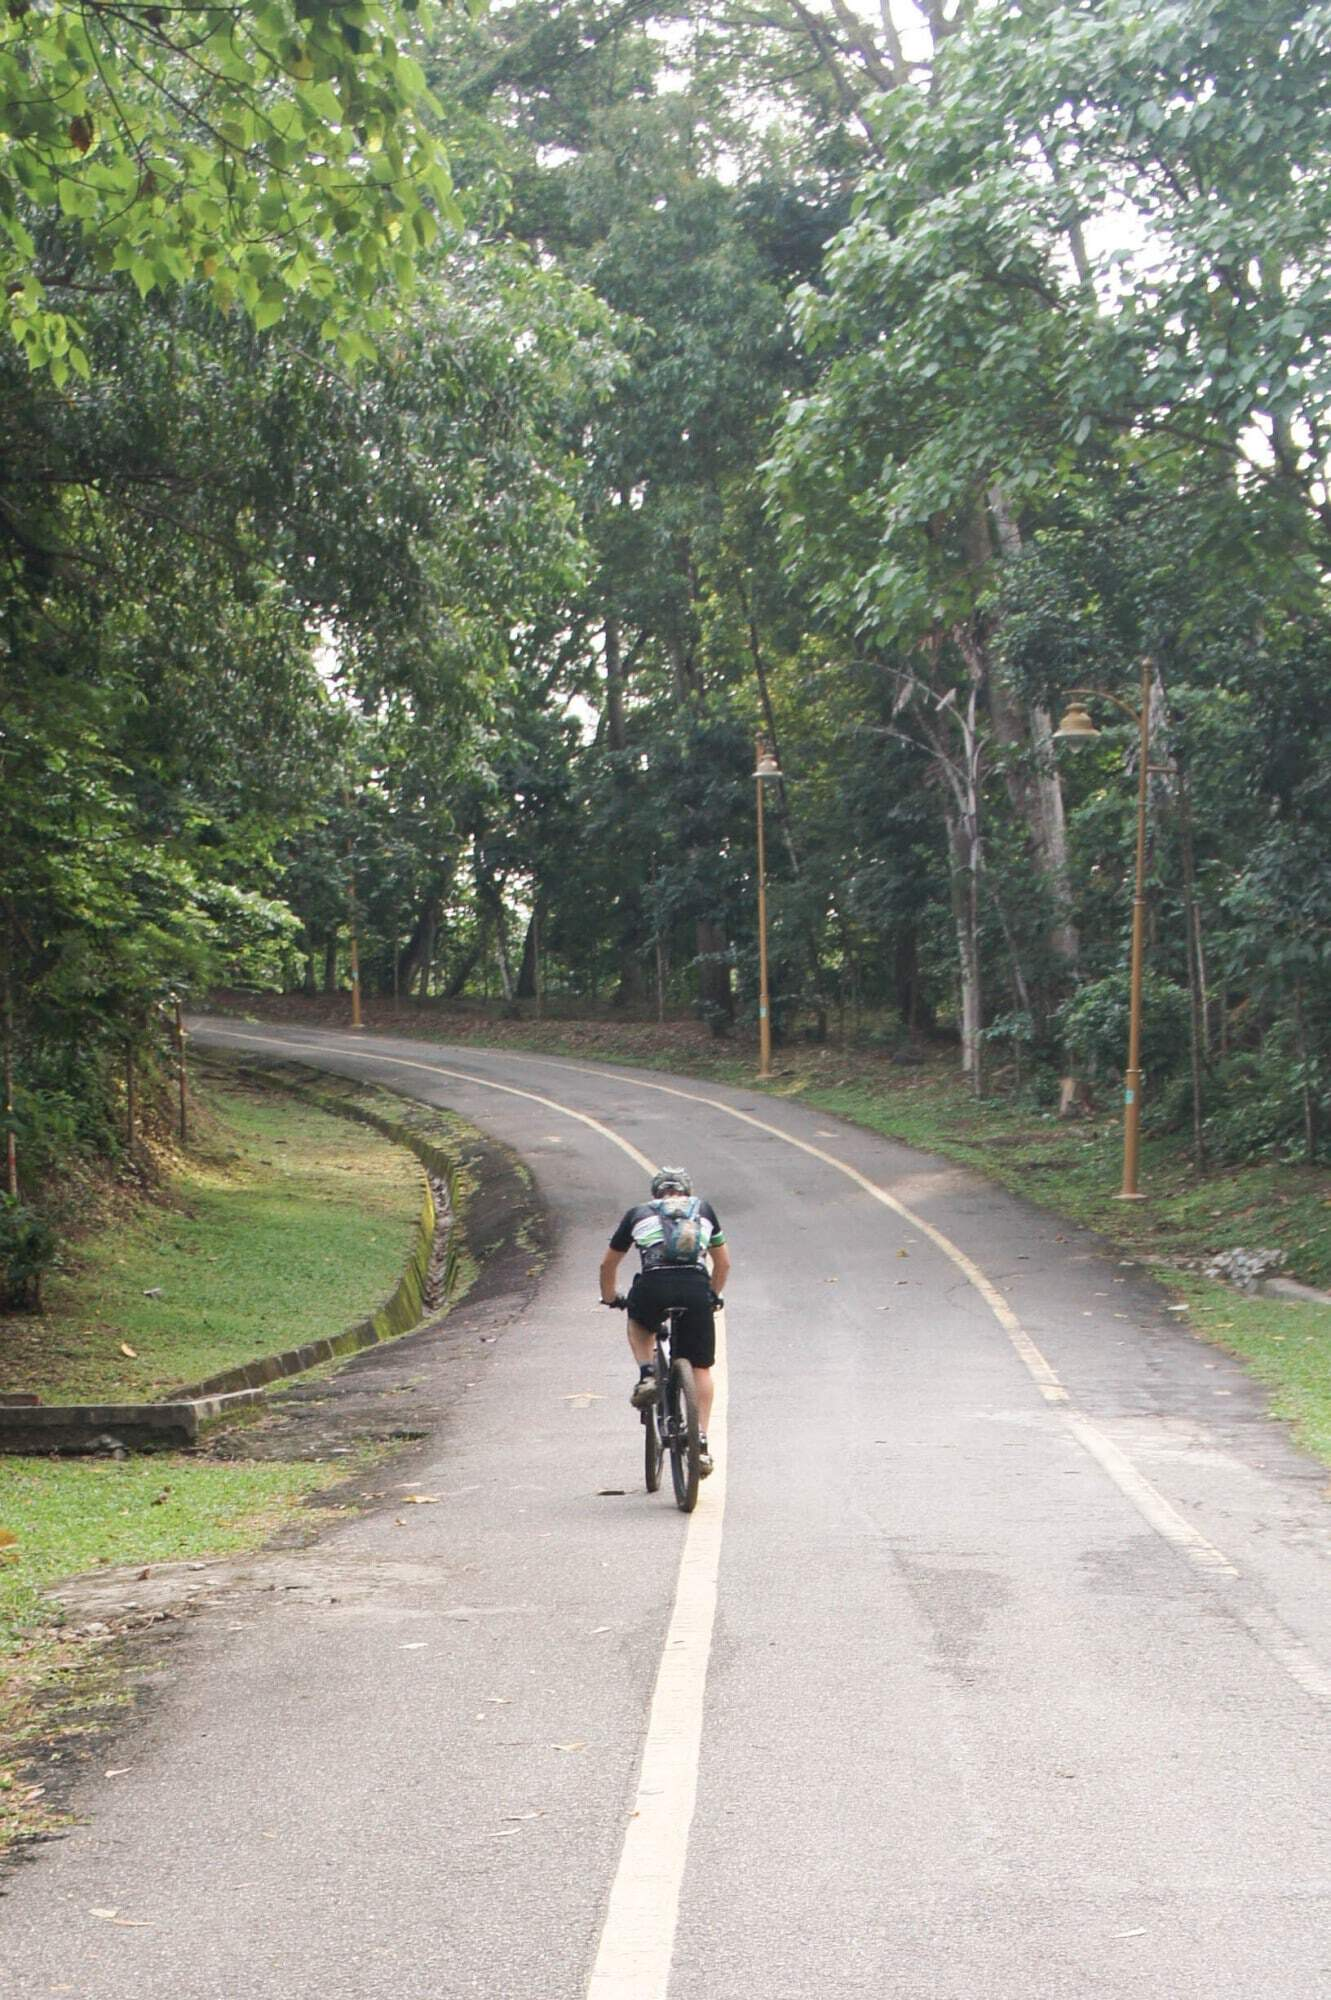 Bukit Kiara Amp The Role Our Cities Play In Promoting Active